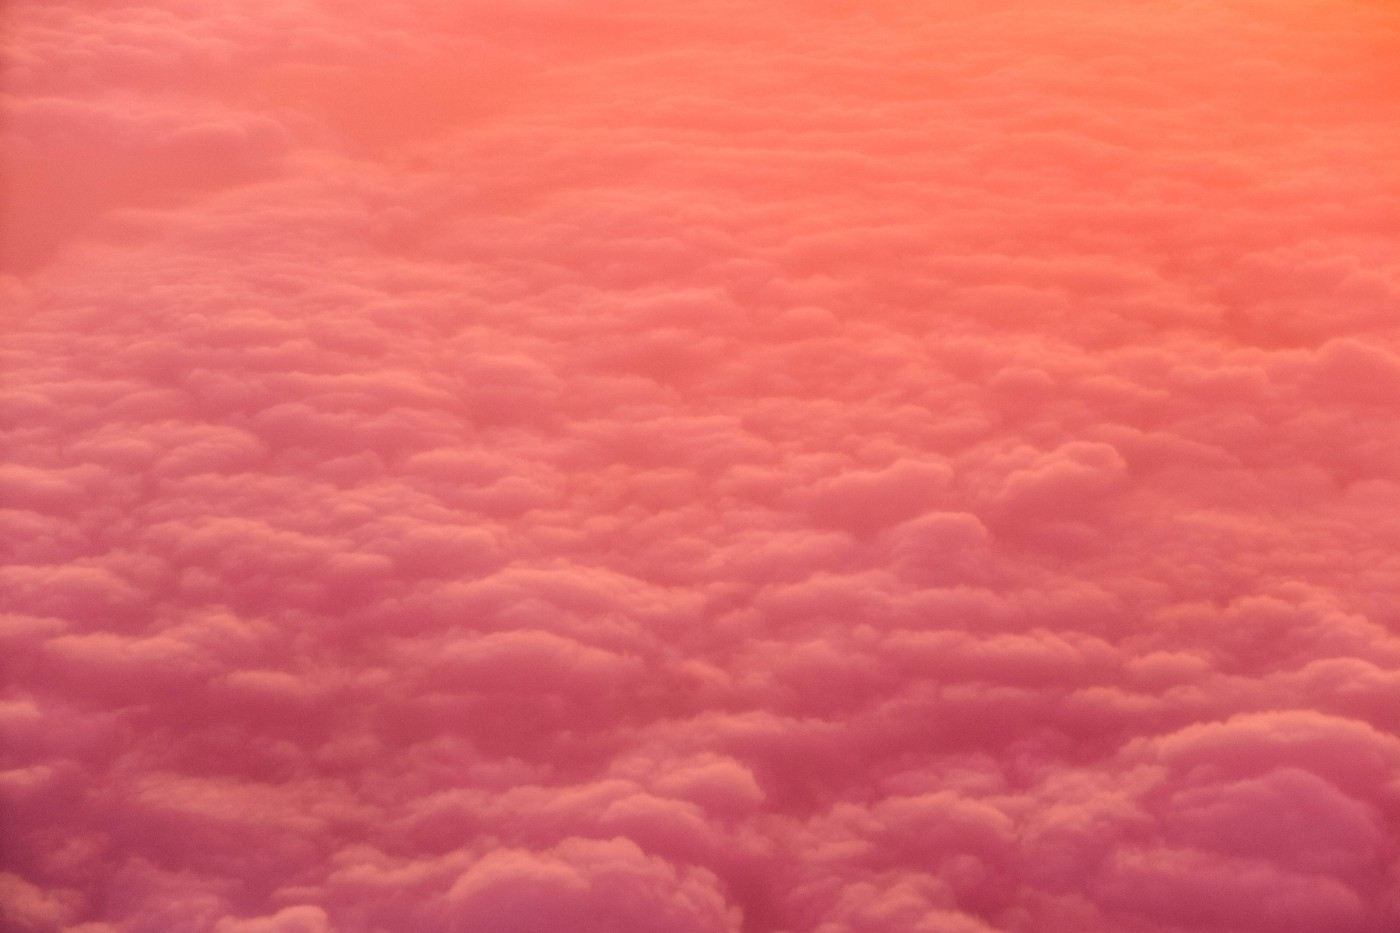 Pink and orange clouds seen from above